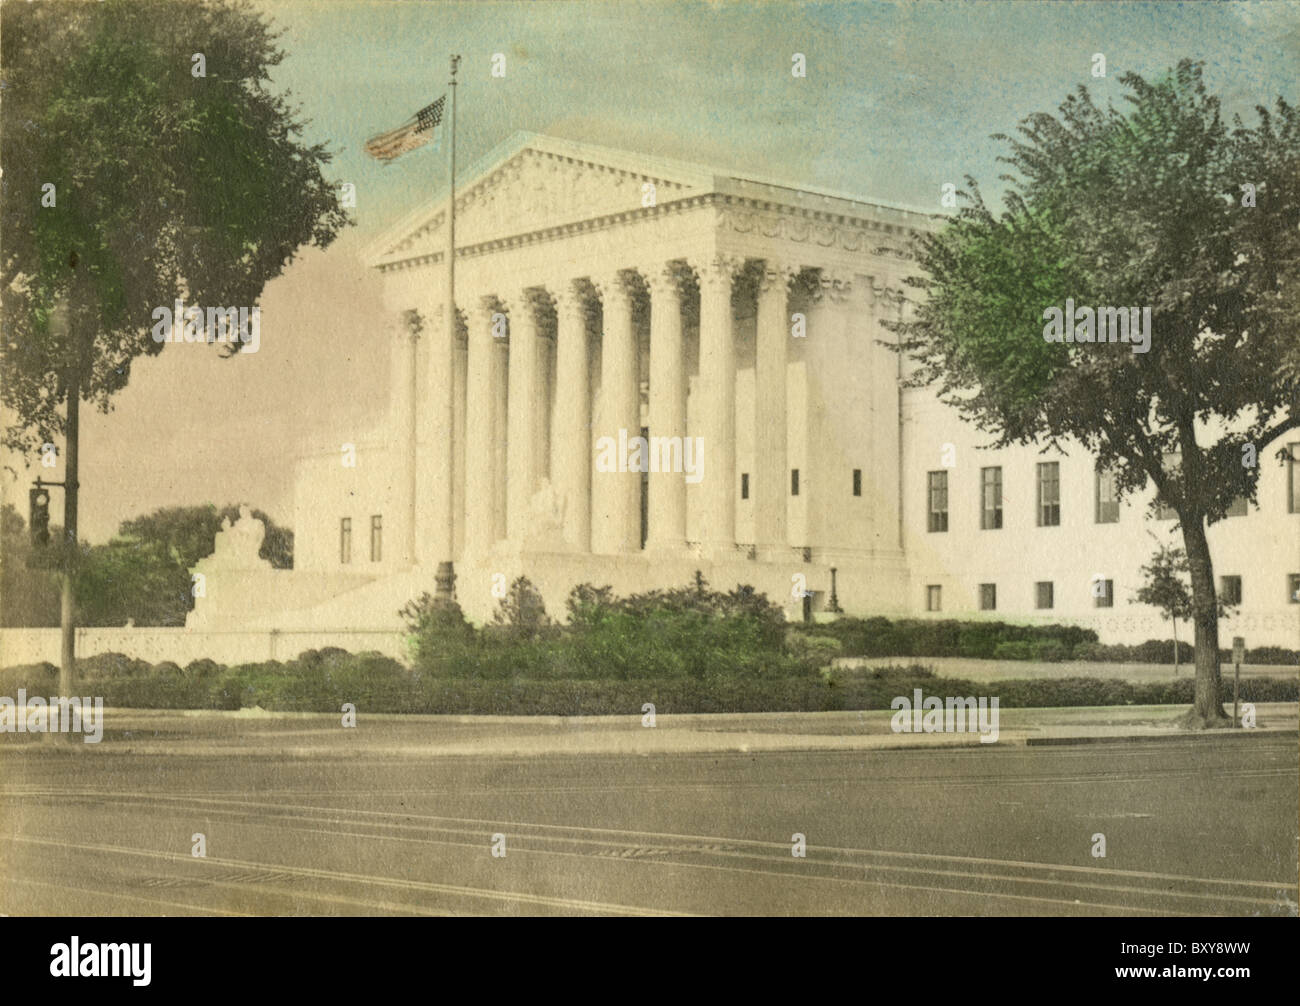 Circa 1910s hand-tinted photograph of the Supreme Court, Washington DC, USA. - Stock Image